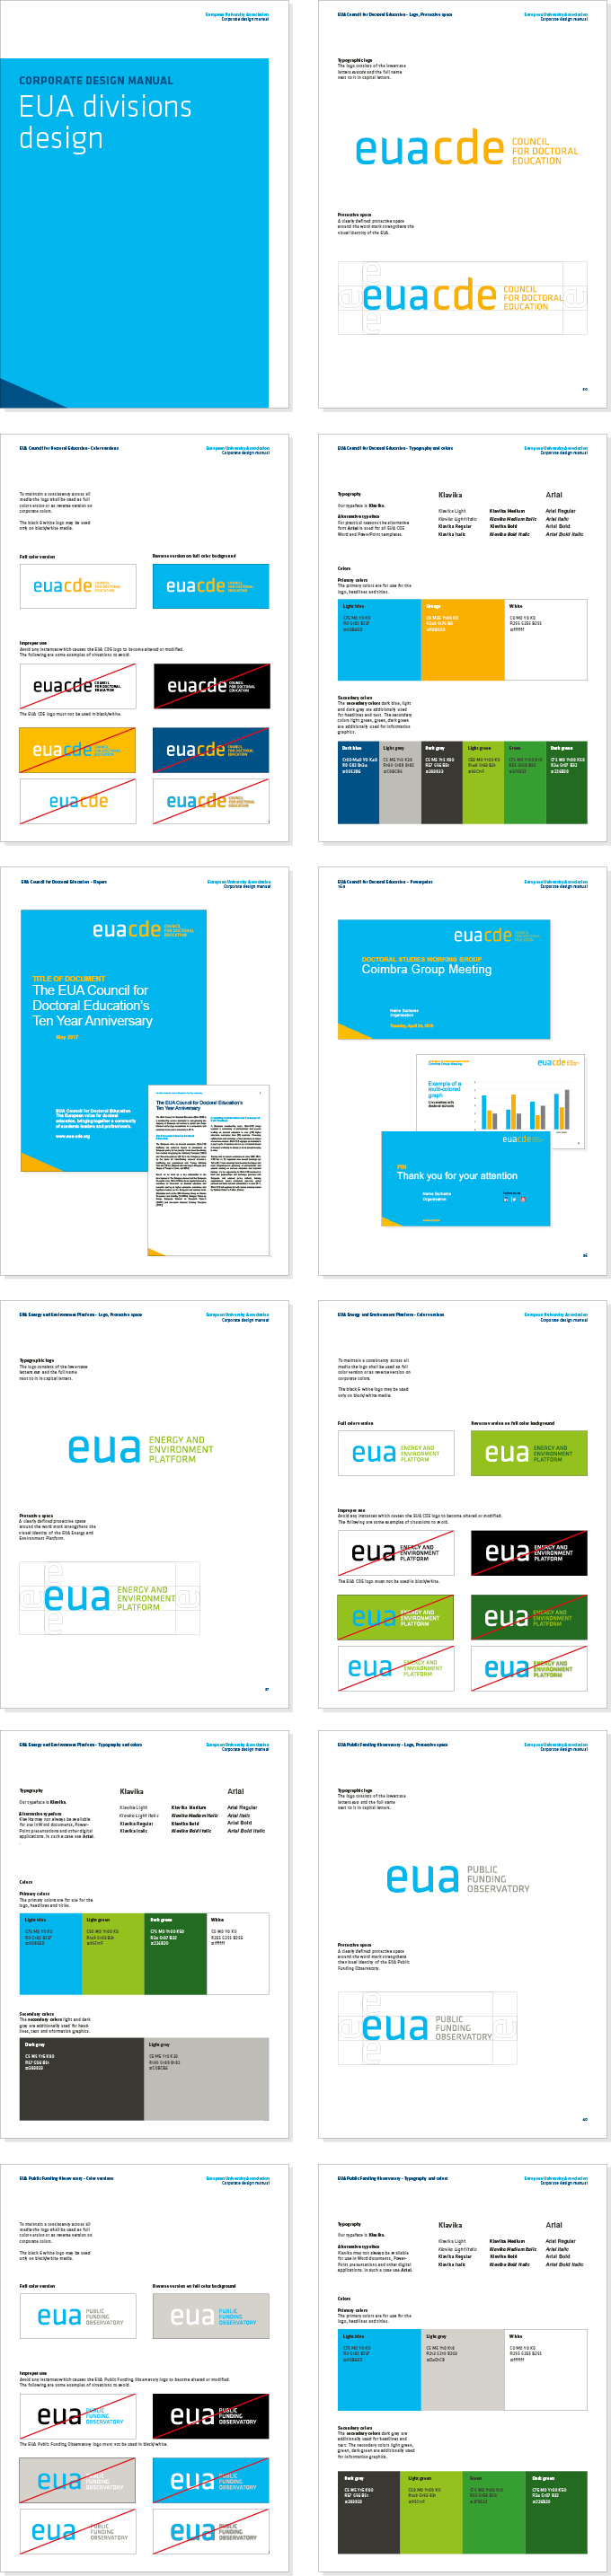 EUA-Corporate-Design-Pitch-Black-Graphic-Design6